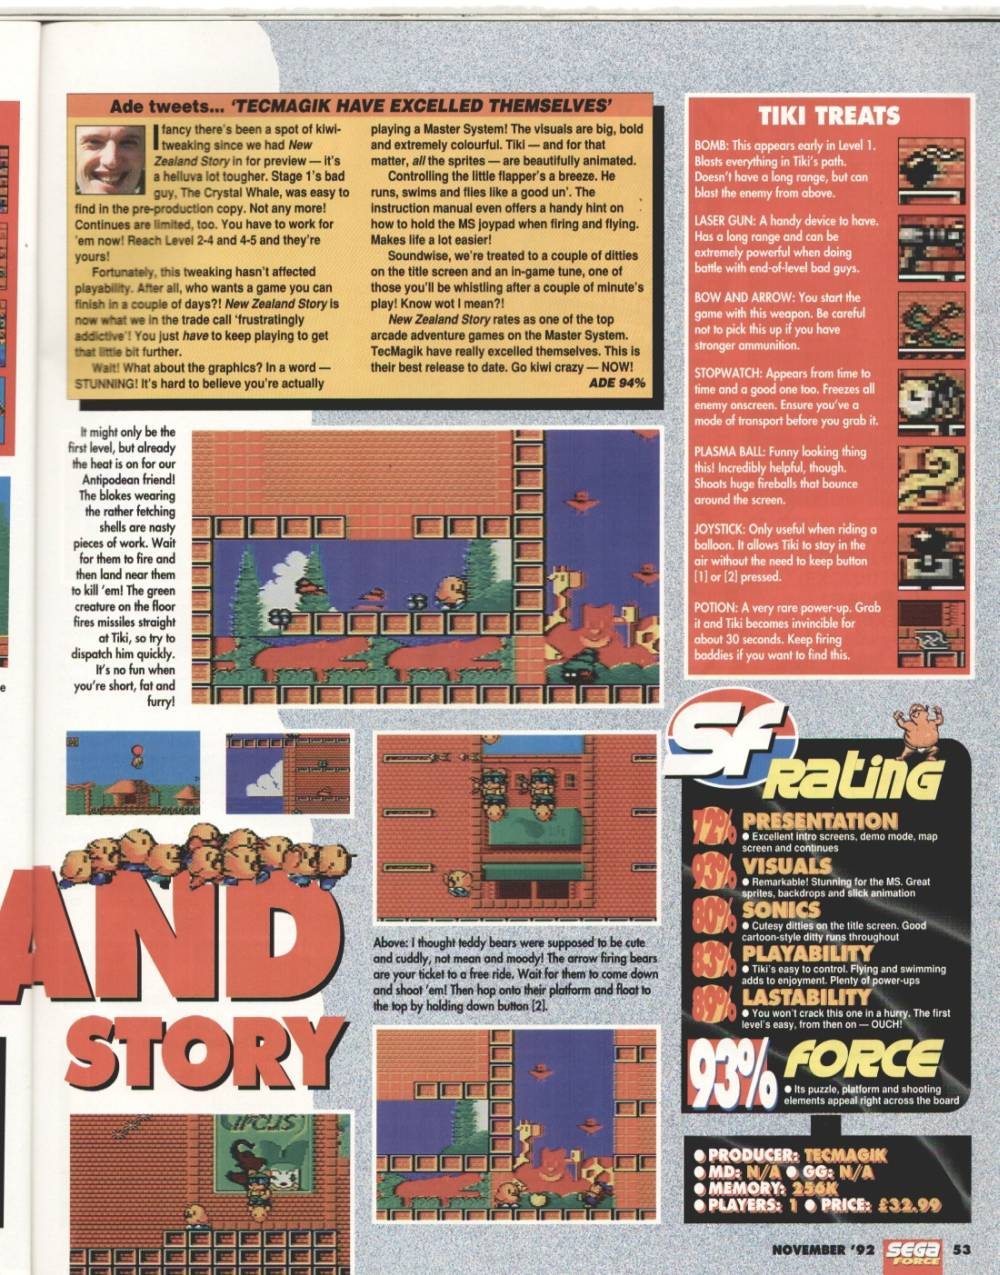 Sega Force - Issue 11 - United Kingdom Magazine - Scans - SMS Power!